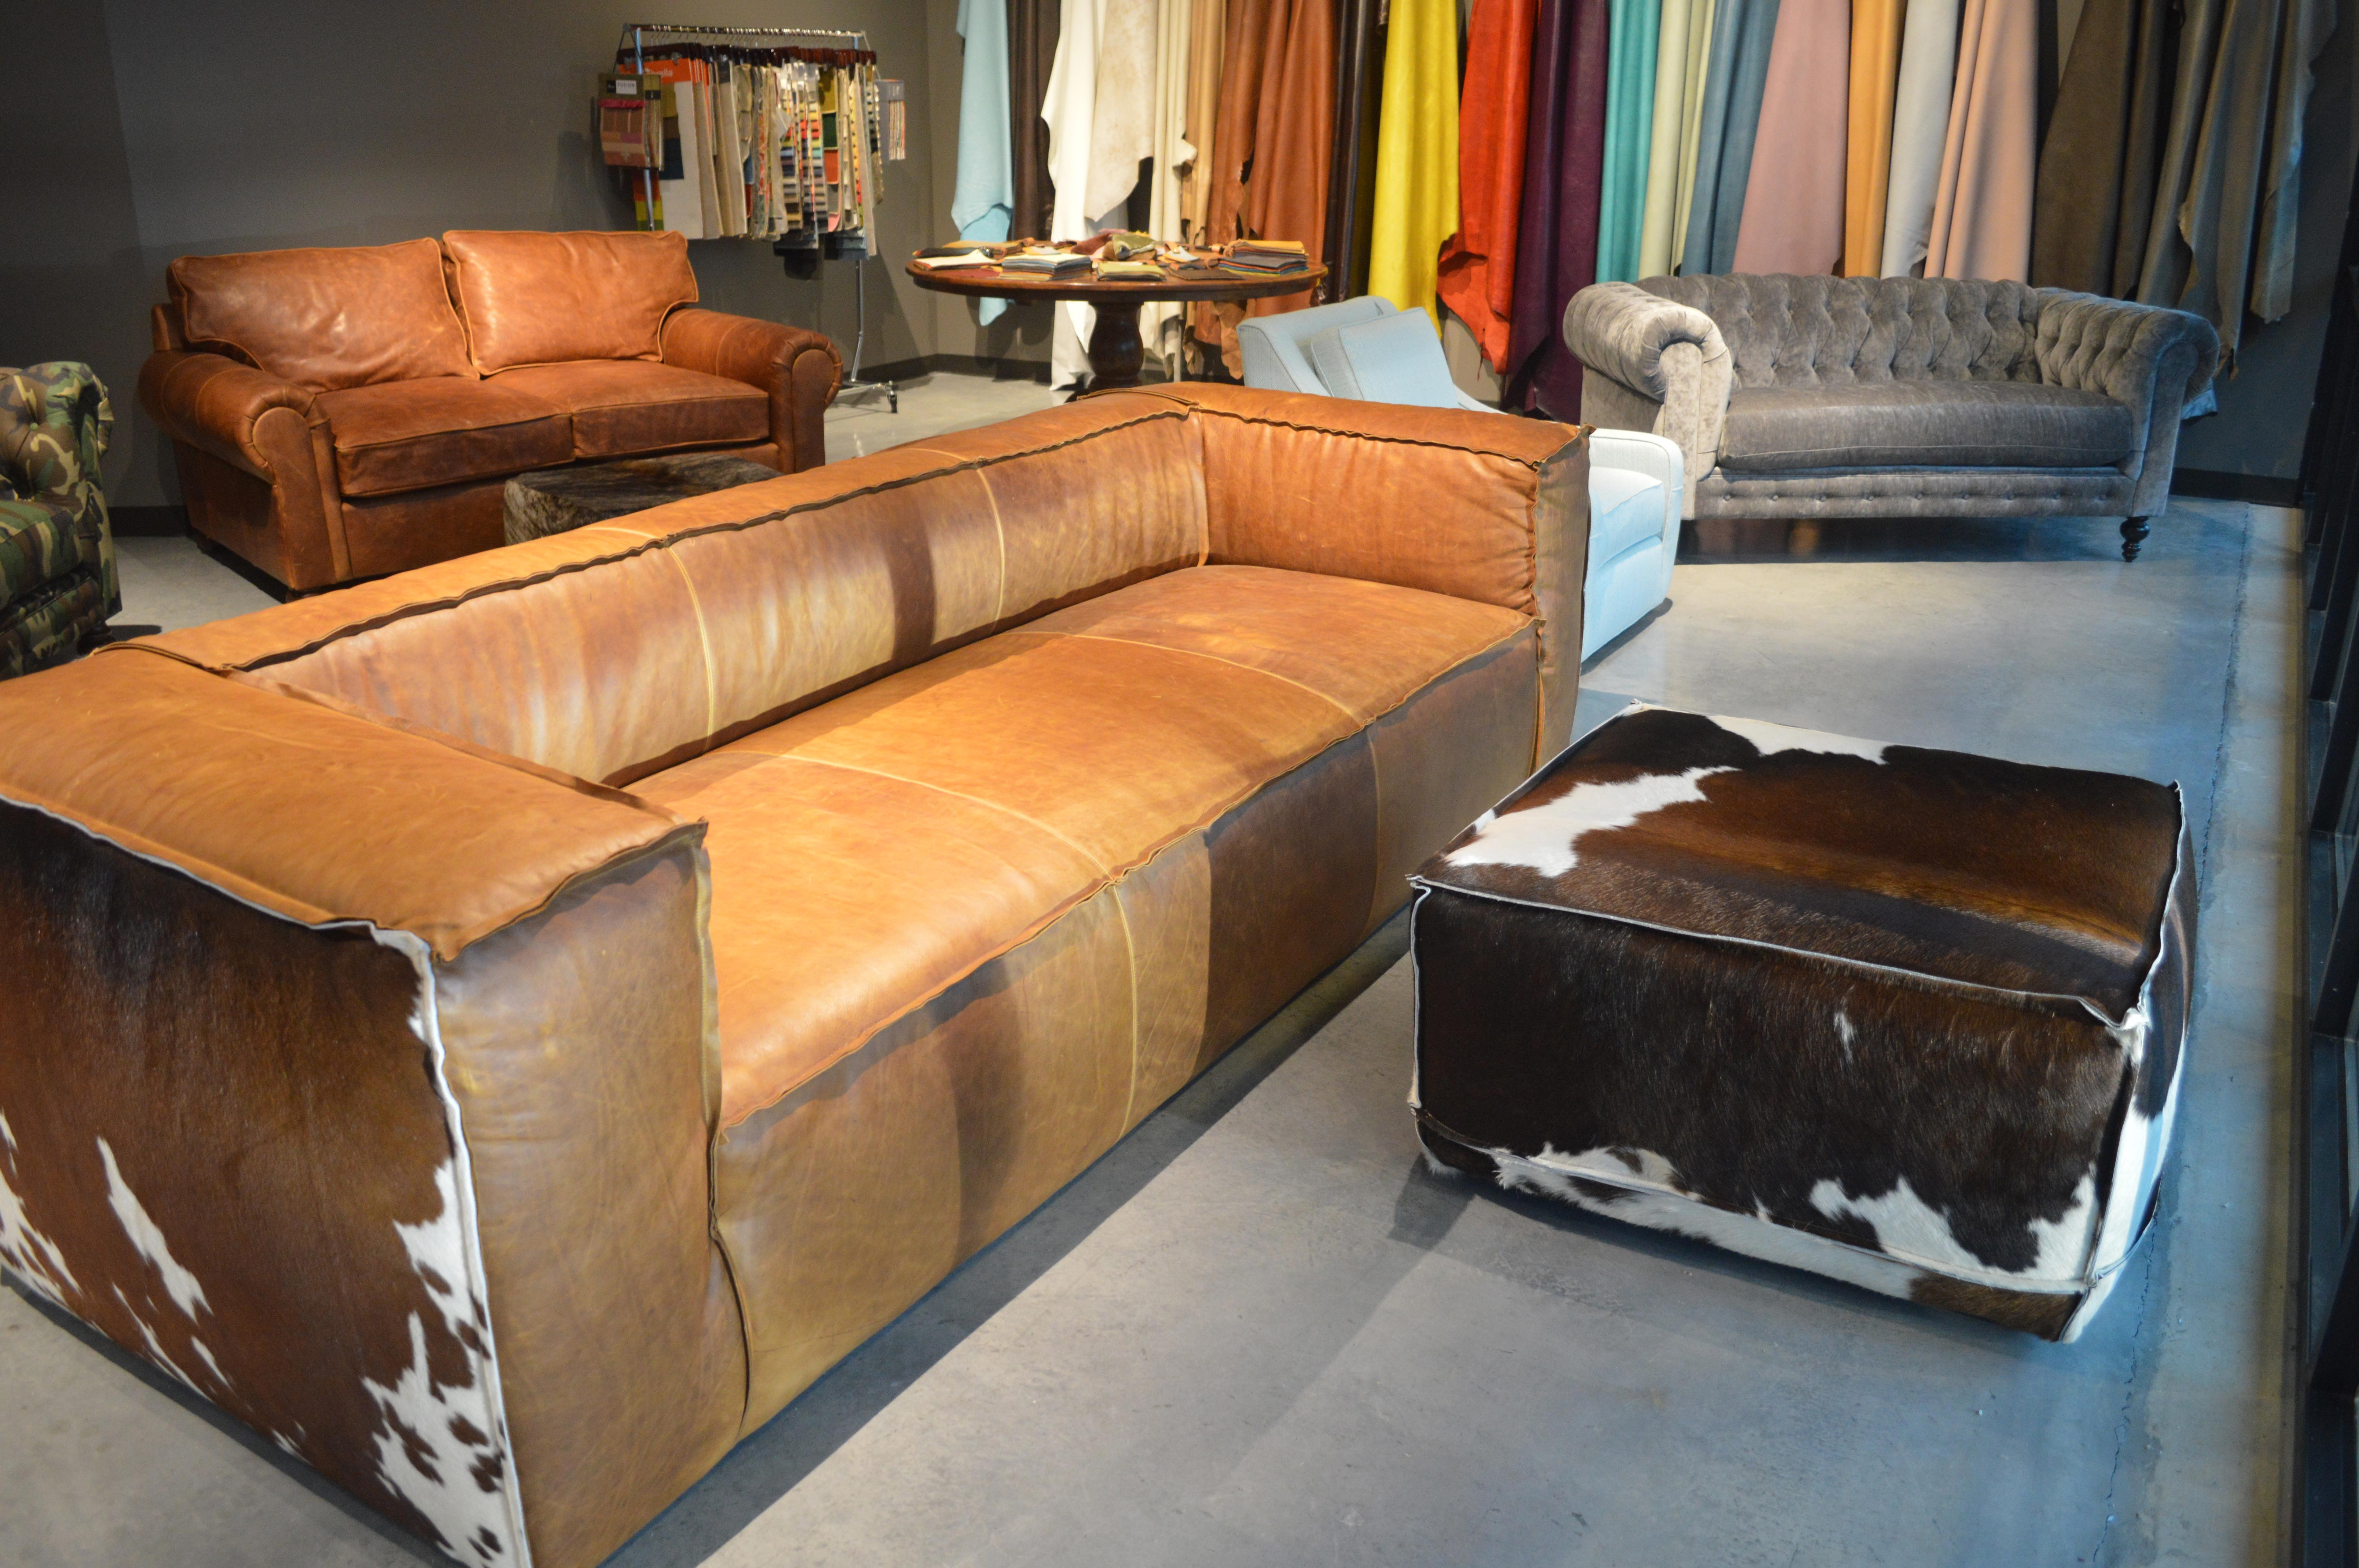 North Carolina Made to Order Furniture pany Opens Showroom in